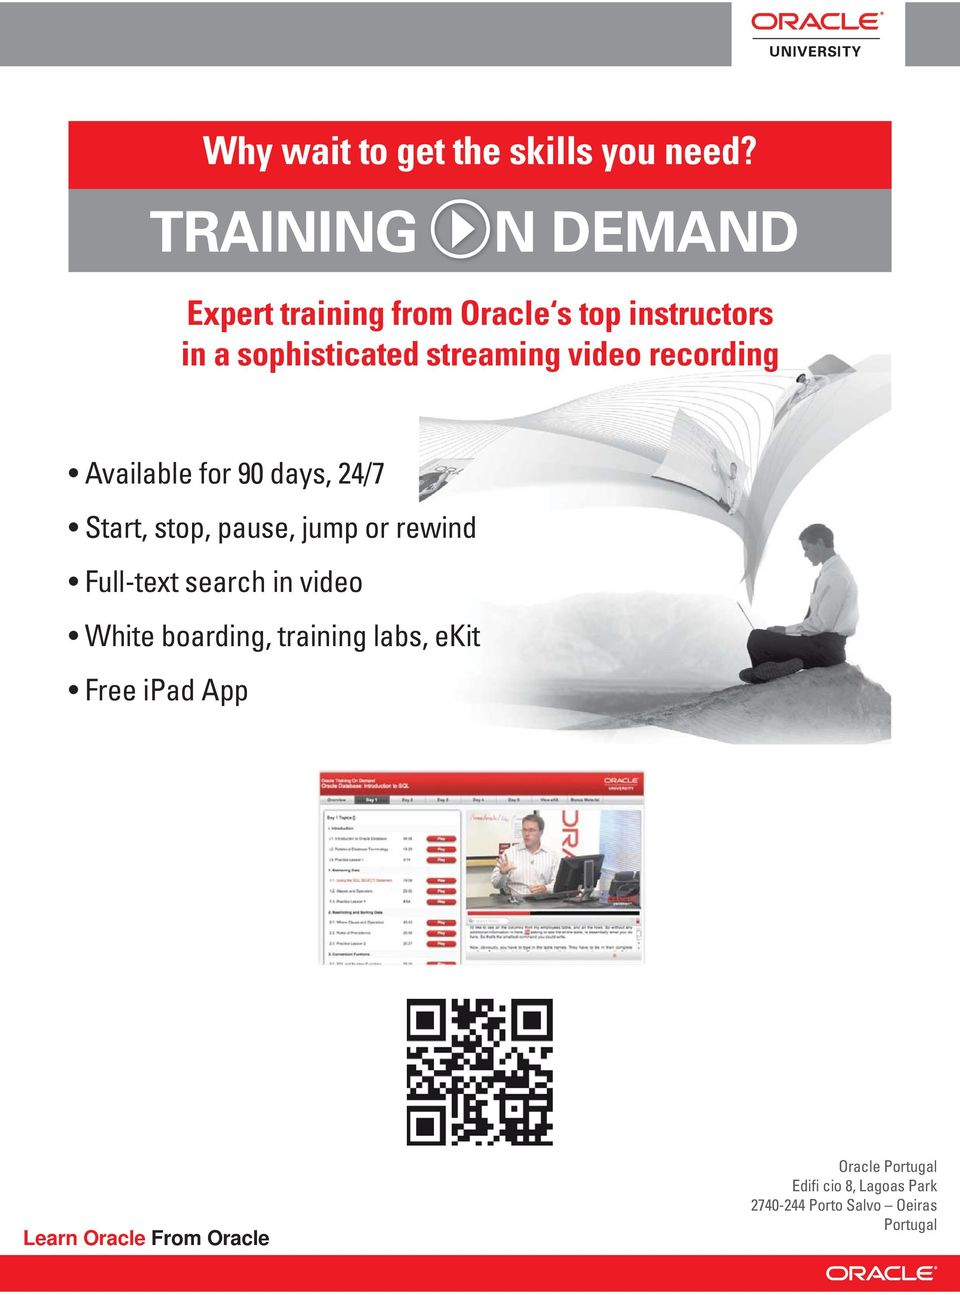 video recording Available for 90 days, 24/7 Start, stop, pause, jump or rewind Full-text search